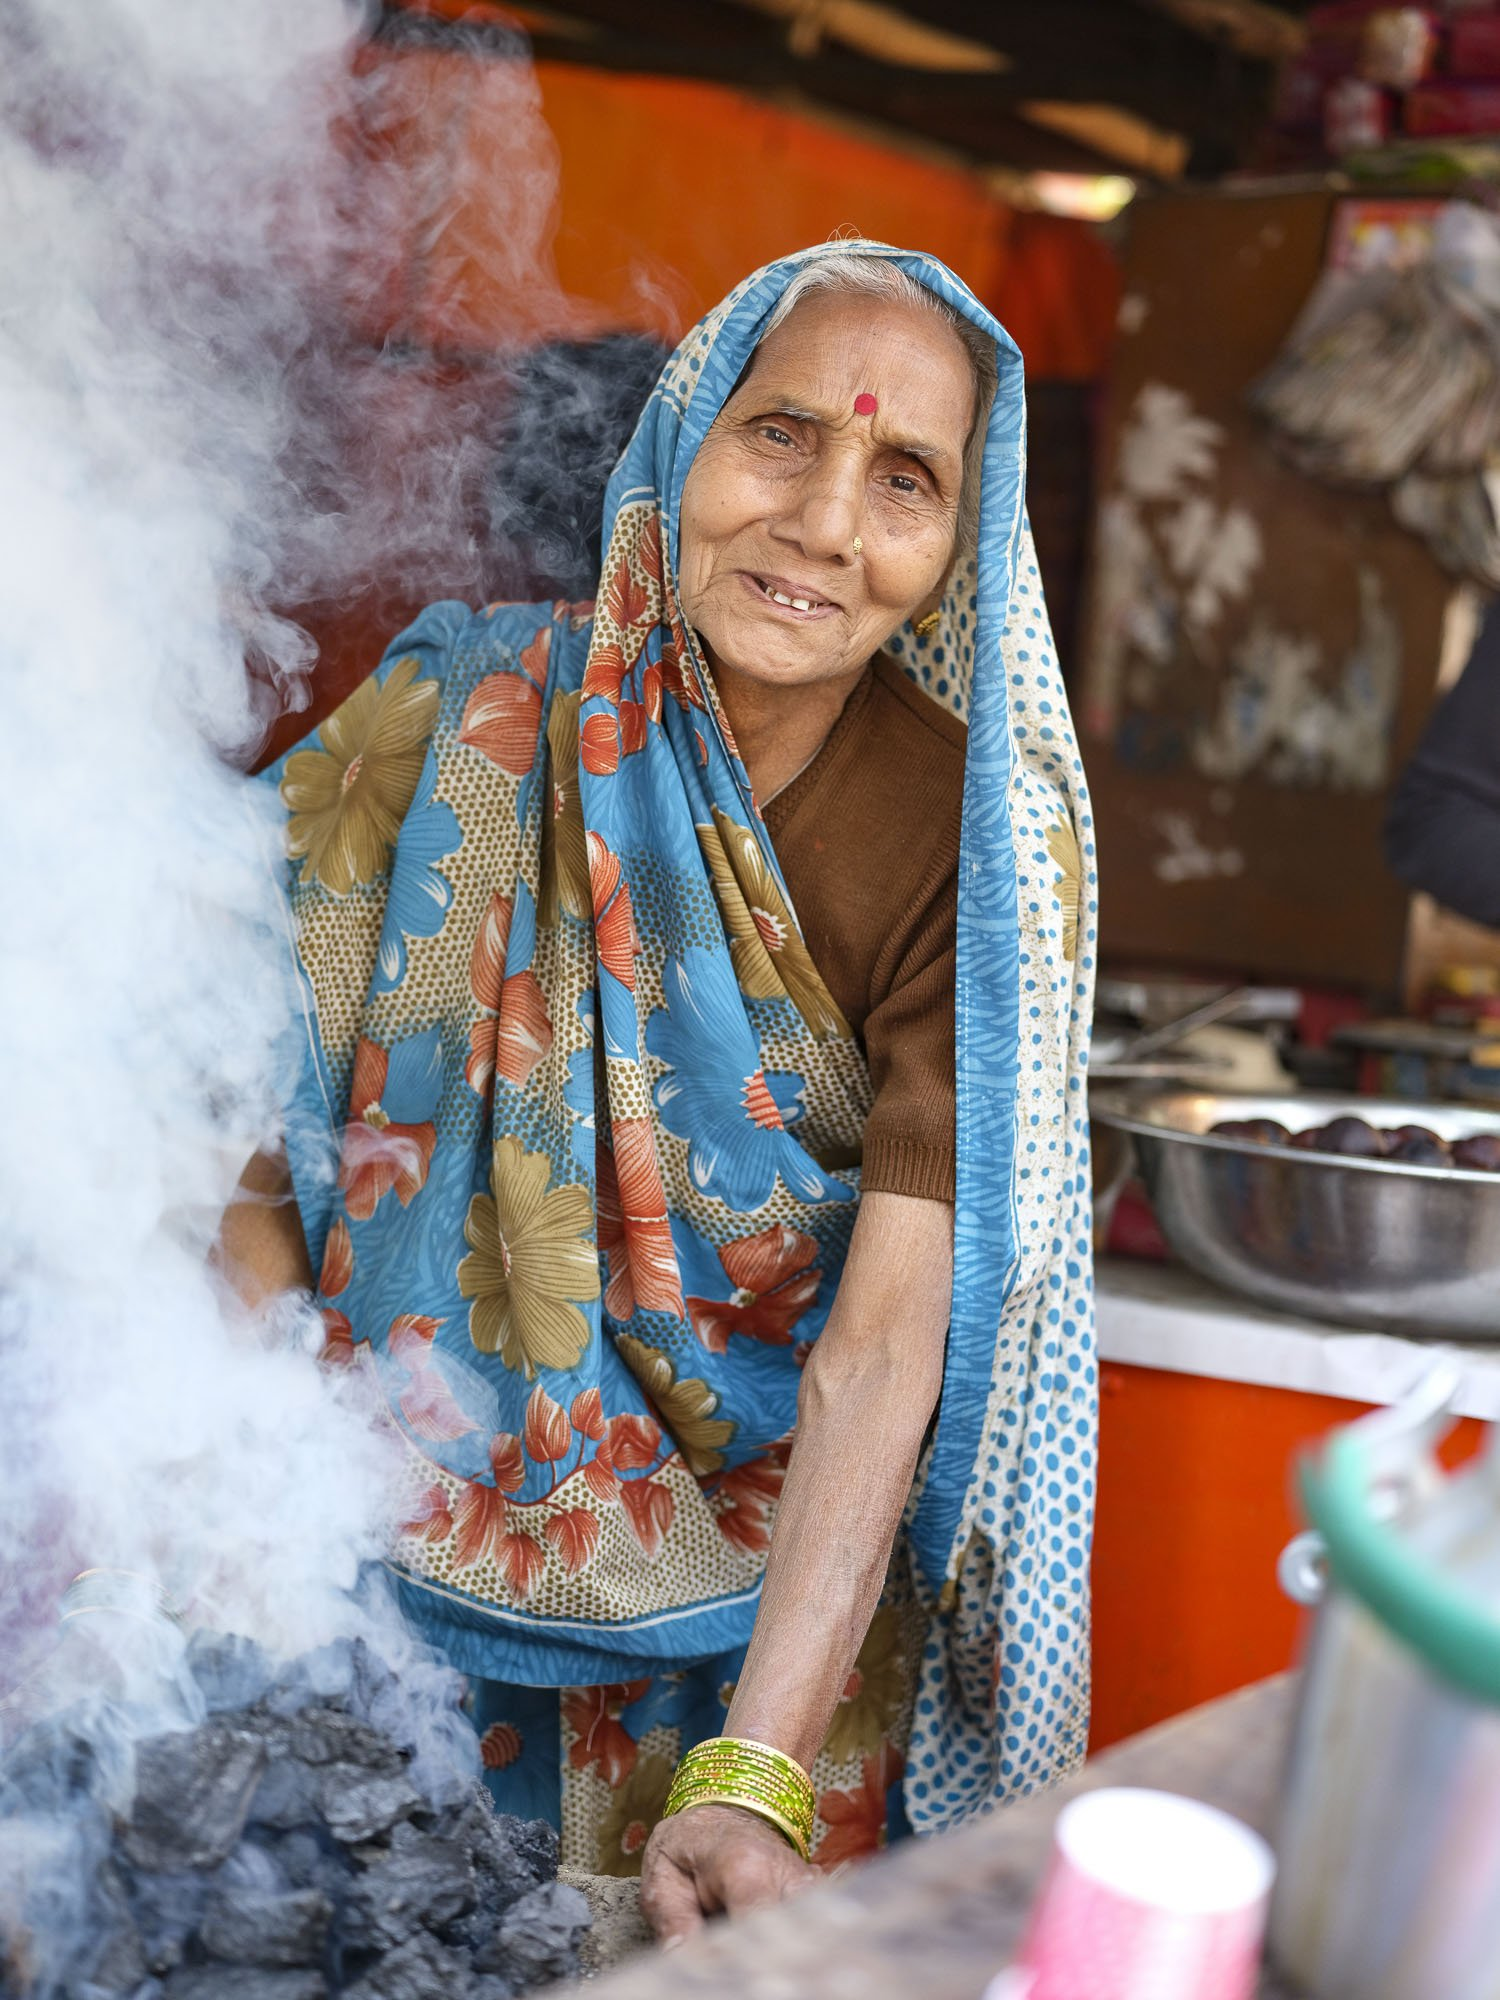 old lady cooking pilgrims Kumbh mela 2019 India Allahabad Prayagraj Ardh hindu religious Festival event rivers photographer jose jeuland photography